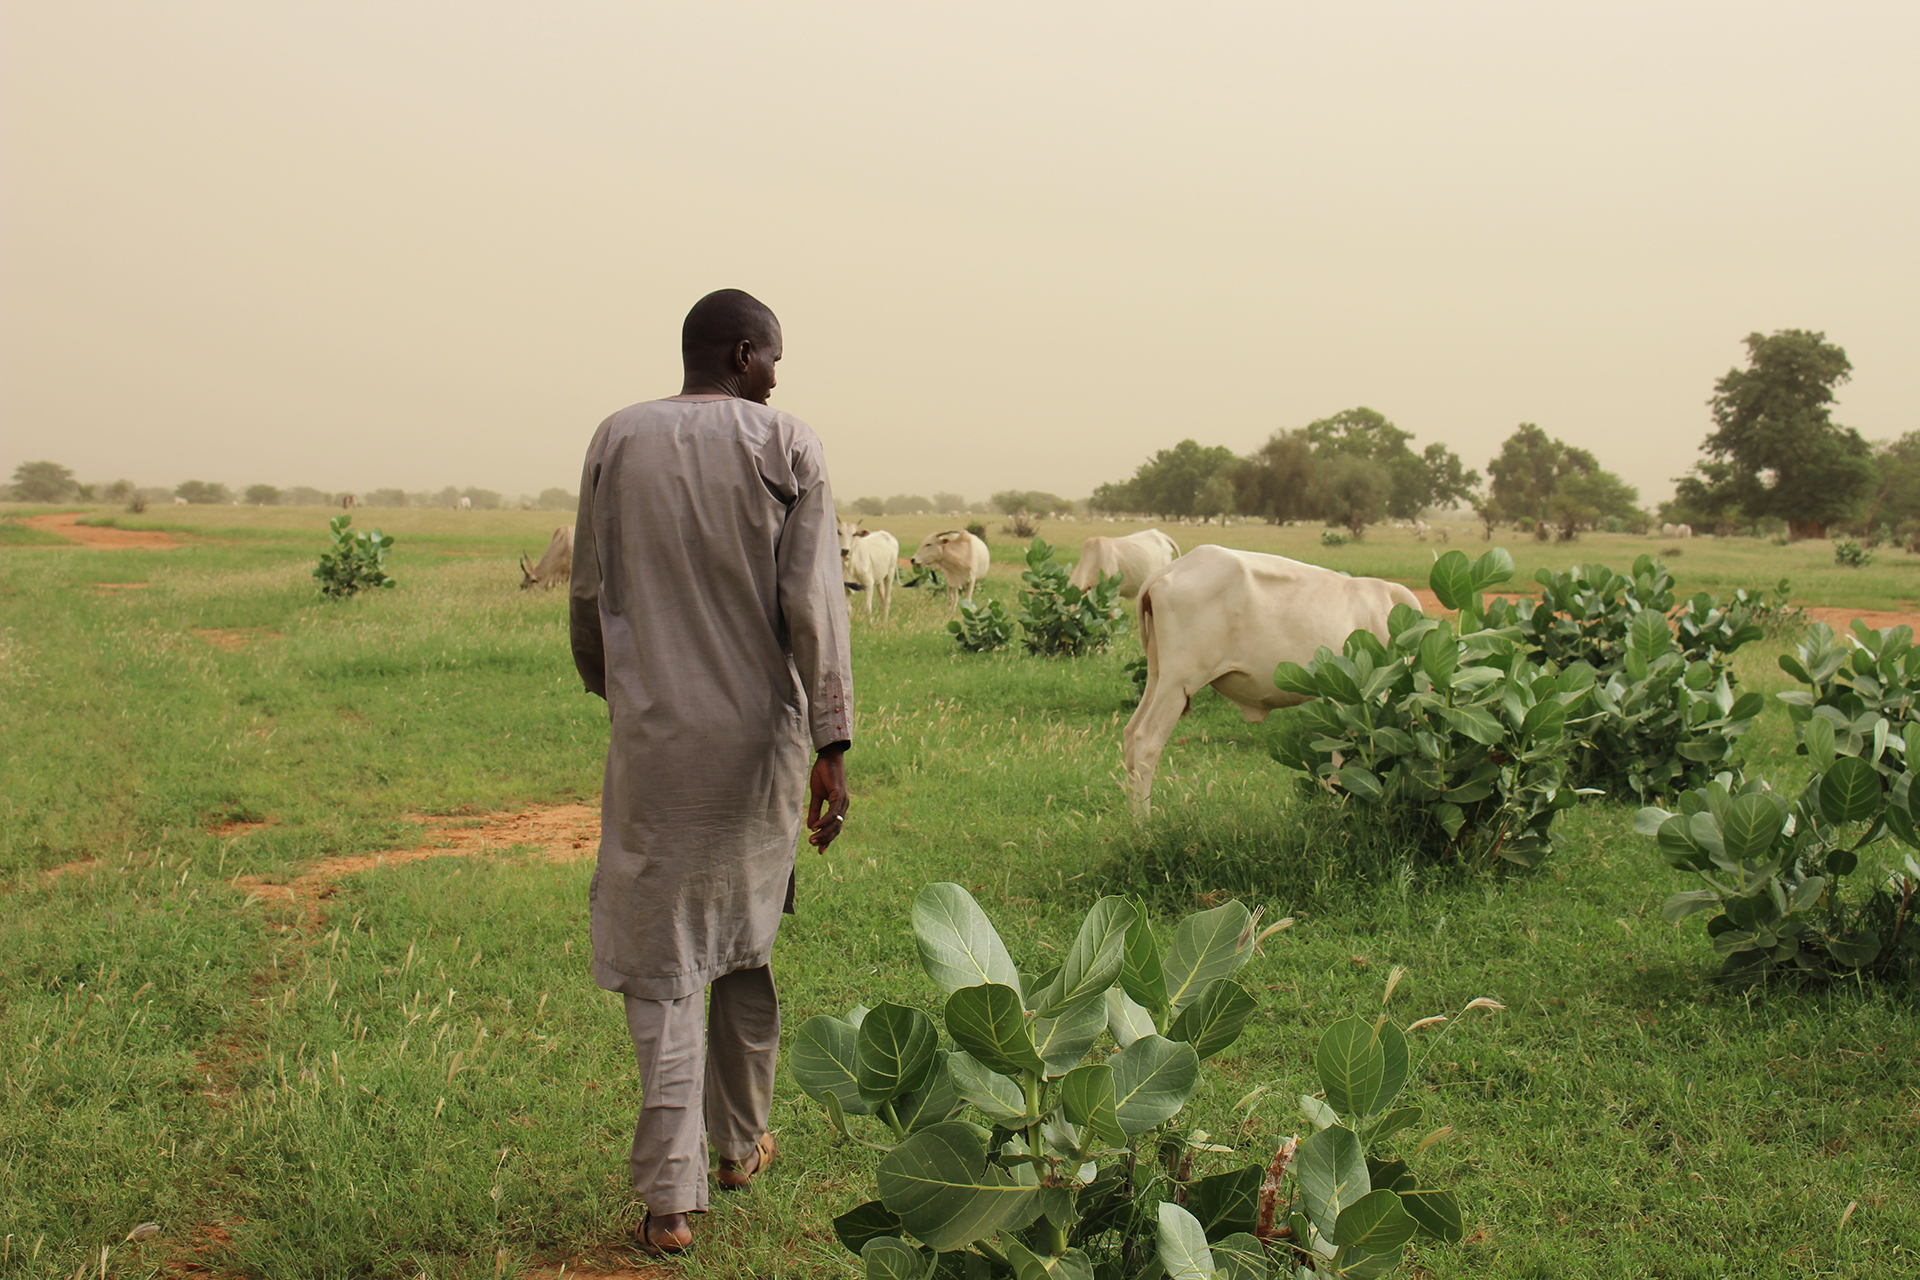 A Senegalese man walks away through low-lying greenery